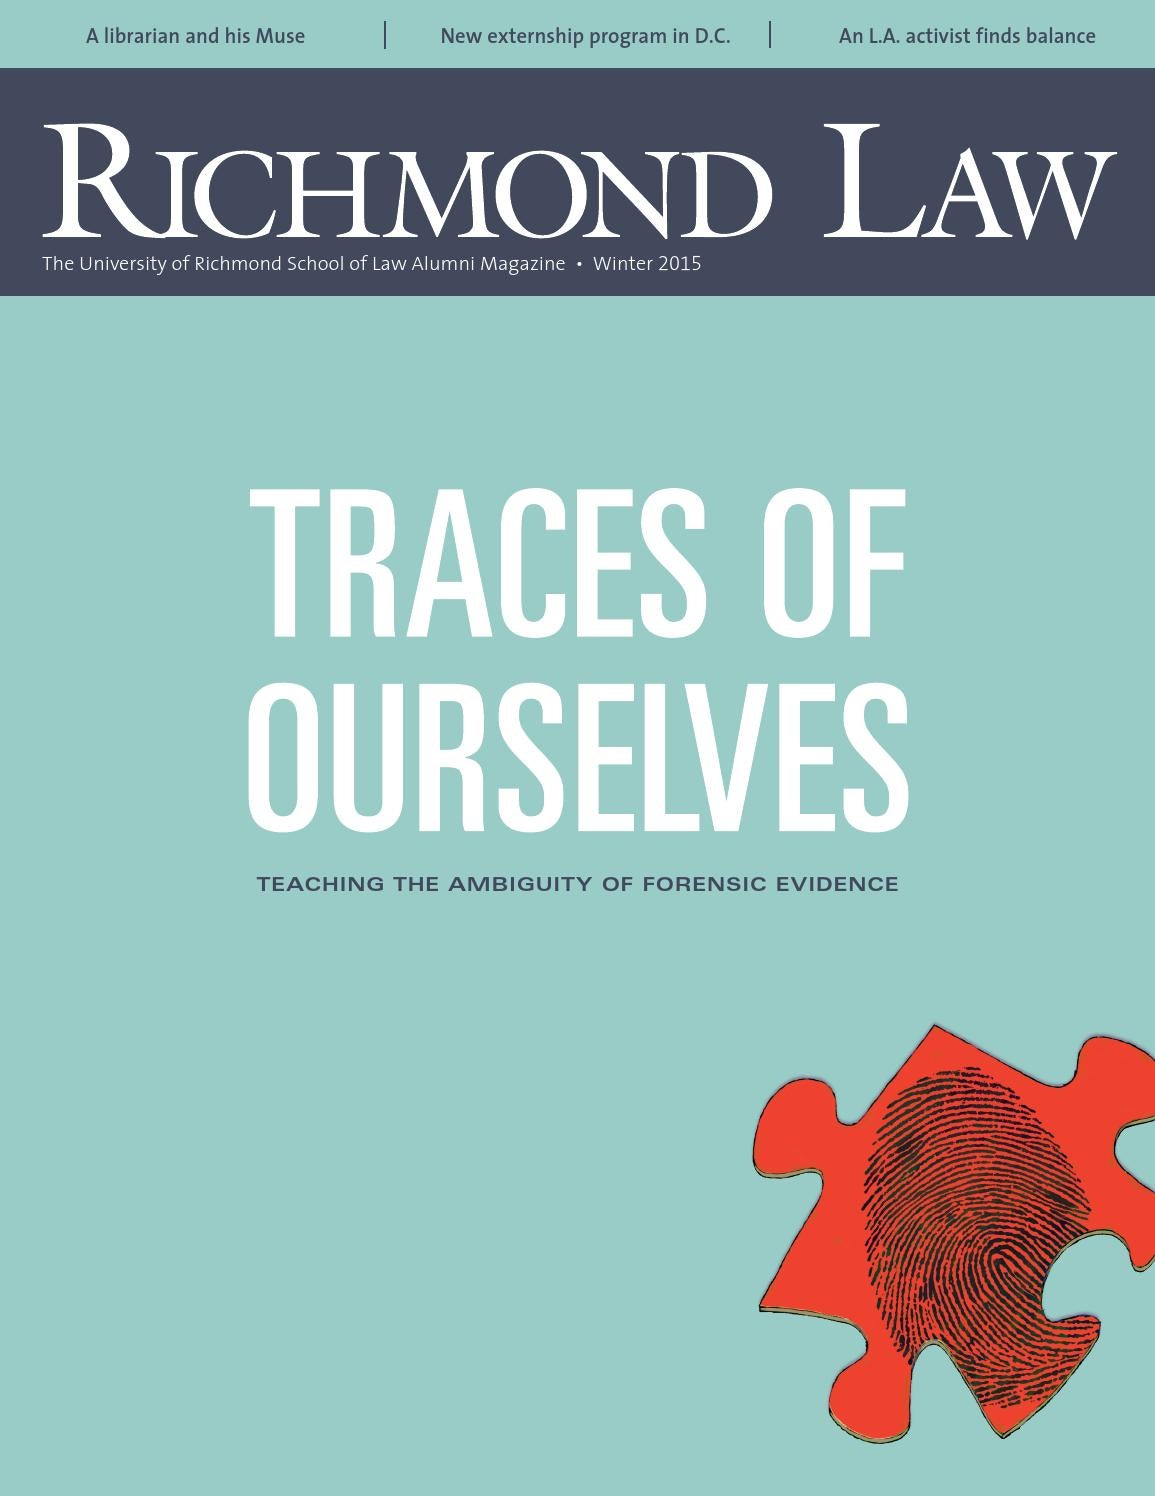 Richmond Law: Winter 2015 by UR Scholarship Repository - issuu